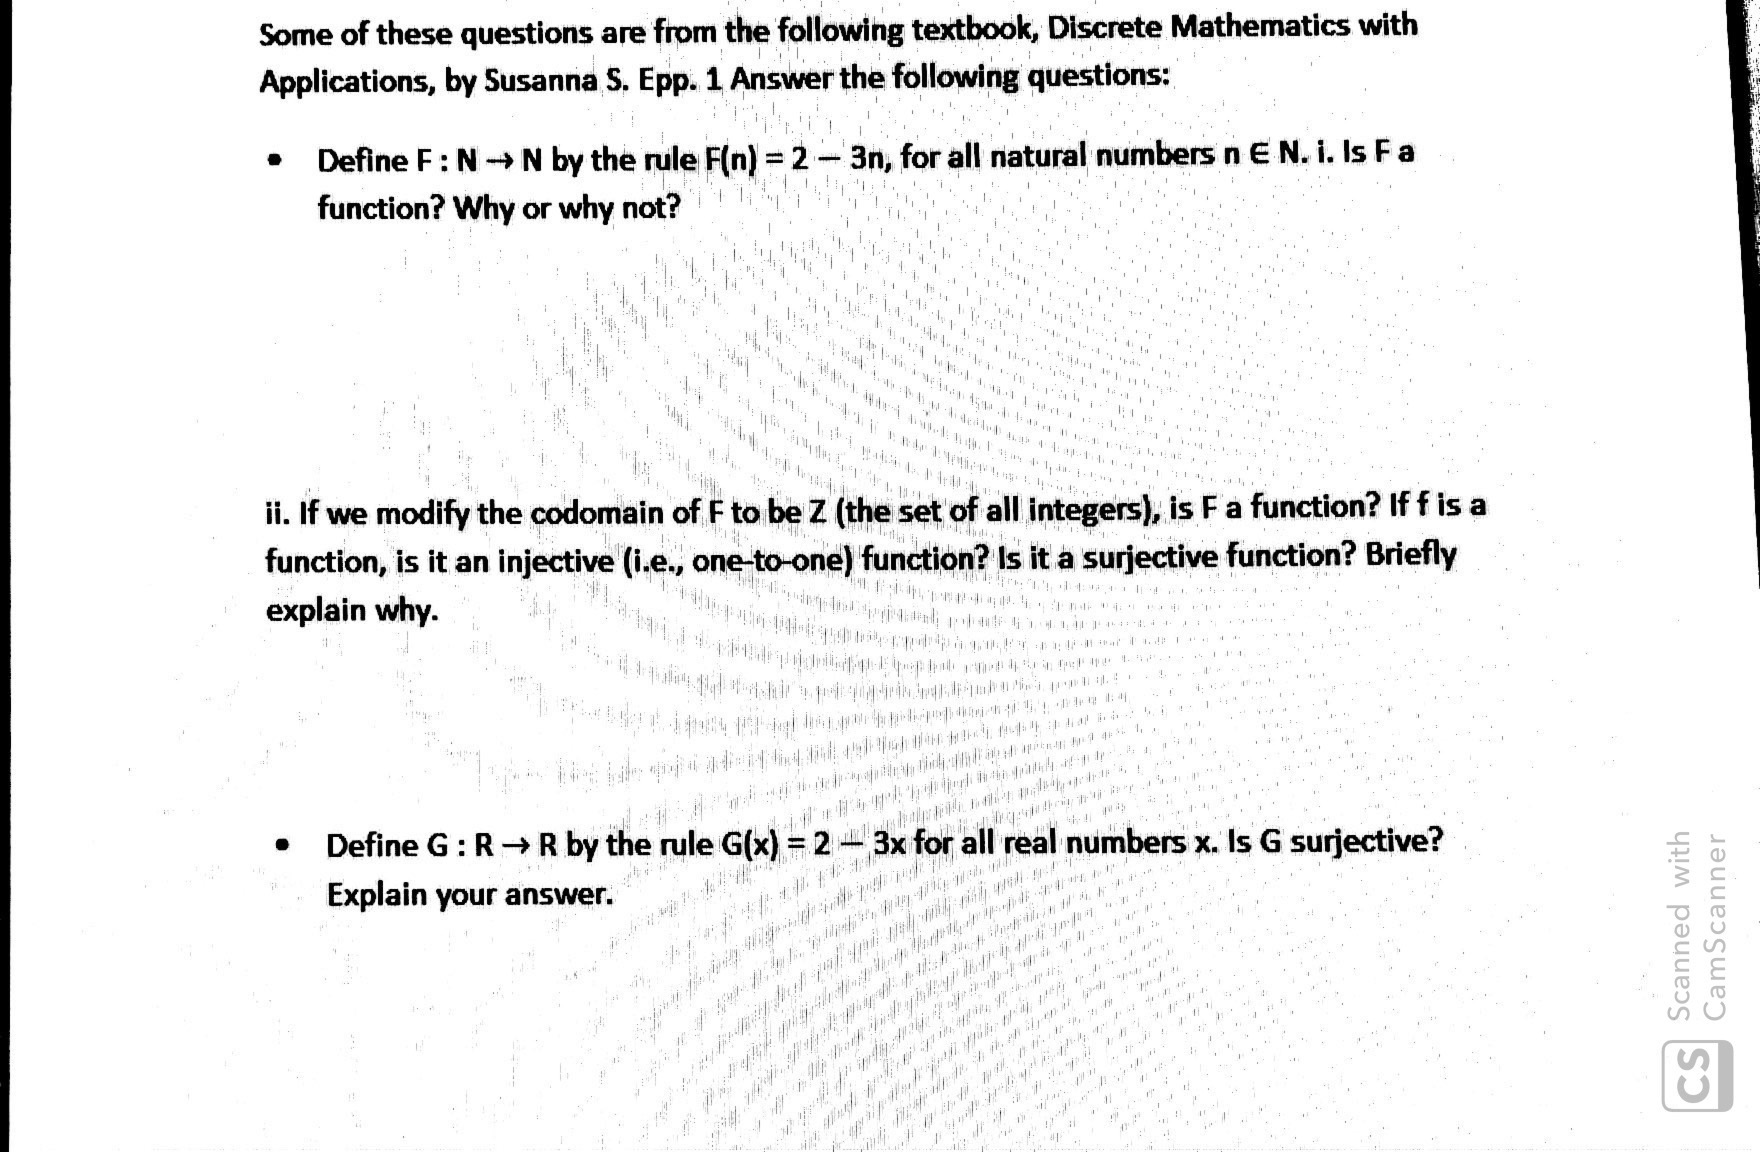 Some of these questions are from the following textbook, Discrete Mathematics with Applications, by Susanna S. Epp. 1 Answer the following questions: Define F: NN by the rule F(n) = 2-3n, for all natural numbers n E N. i. Is Fa function? Why or why not? &ihhe *** 4r152191 i. If we modify the codomain of F to be Z (the set of all integers), is F a function? If f is a function, is it an injective (i.e., one-to-one) function? Is it a surjective function? Briefly explain why. PEWAY I 44**# 4 p Define G: RR by the rule G(x) = 2 3x for all real numbers x. Is G surjective? Explain your answer. /0. a # , CS Scanned with CamScanner